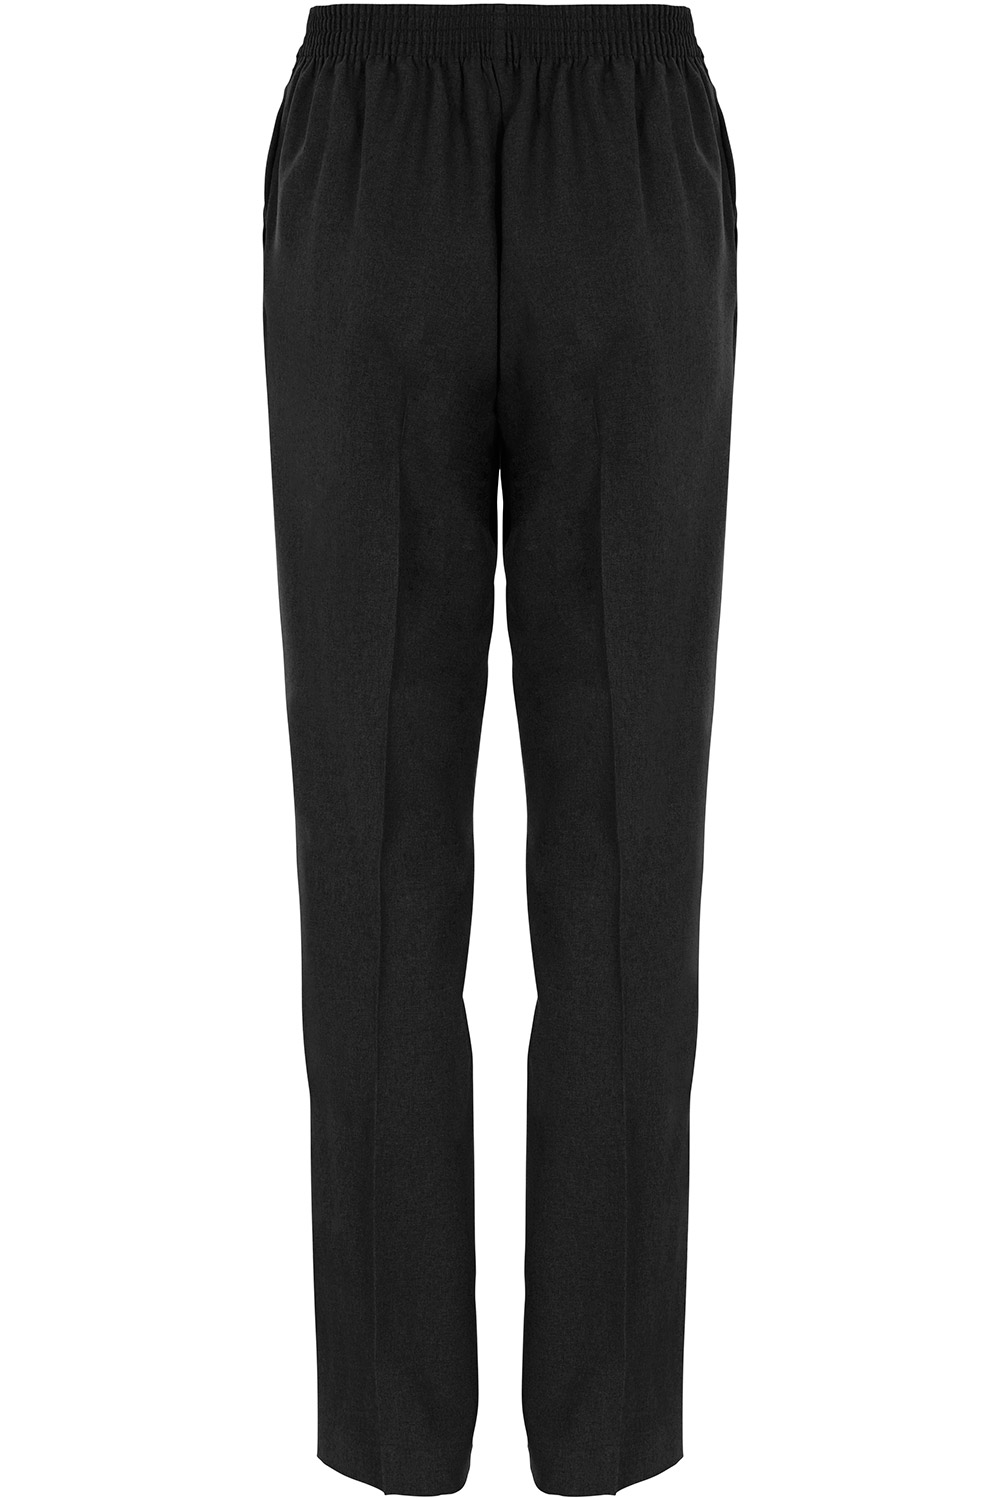 bb859800826 Buy Pull On Classic Straight Leg Trousers